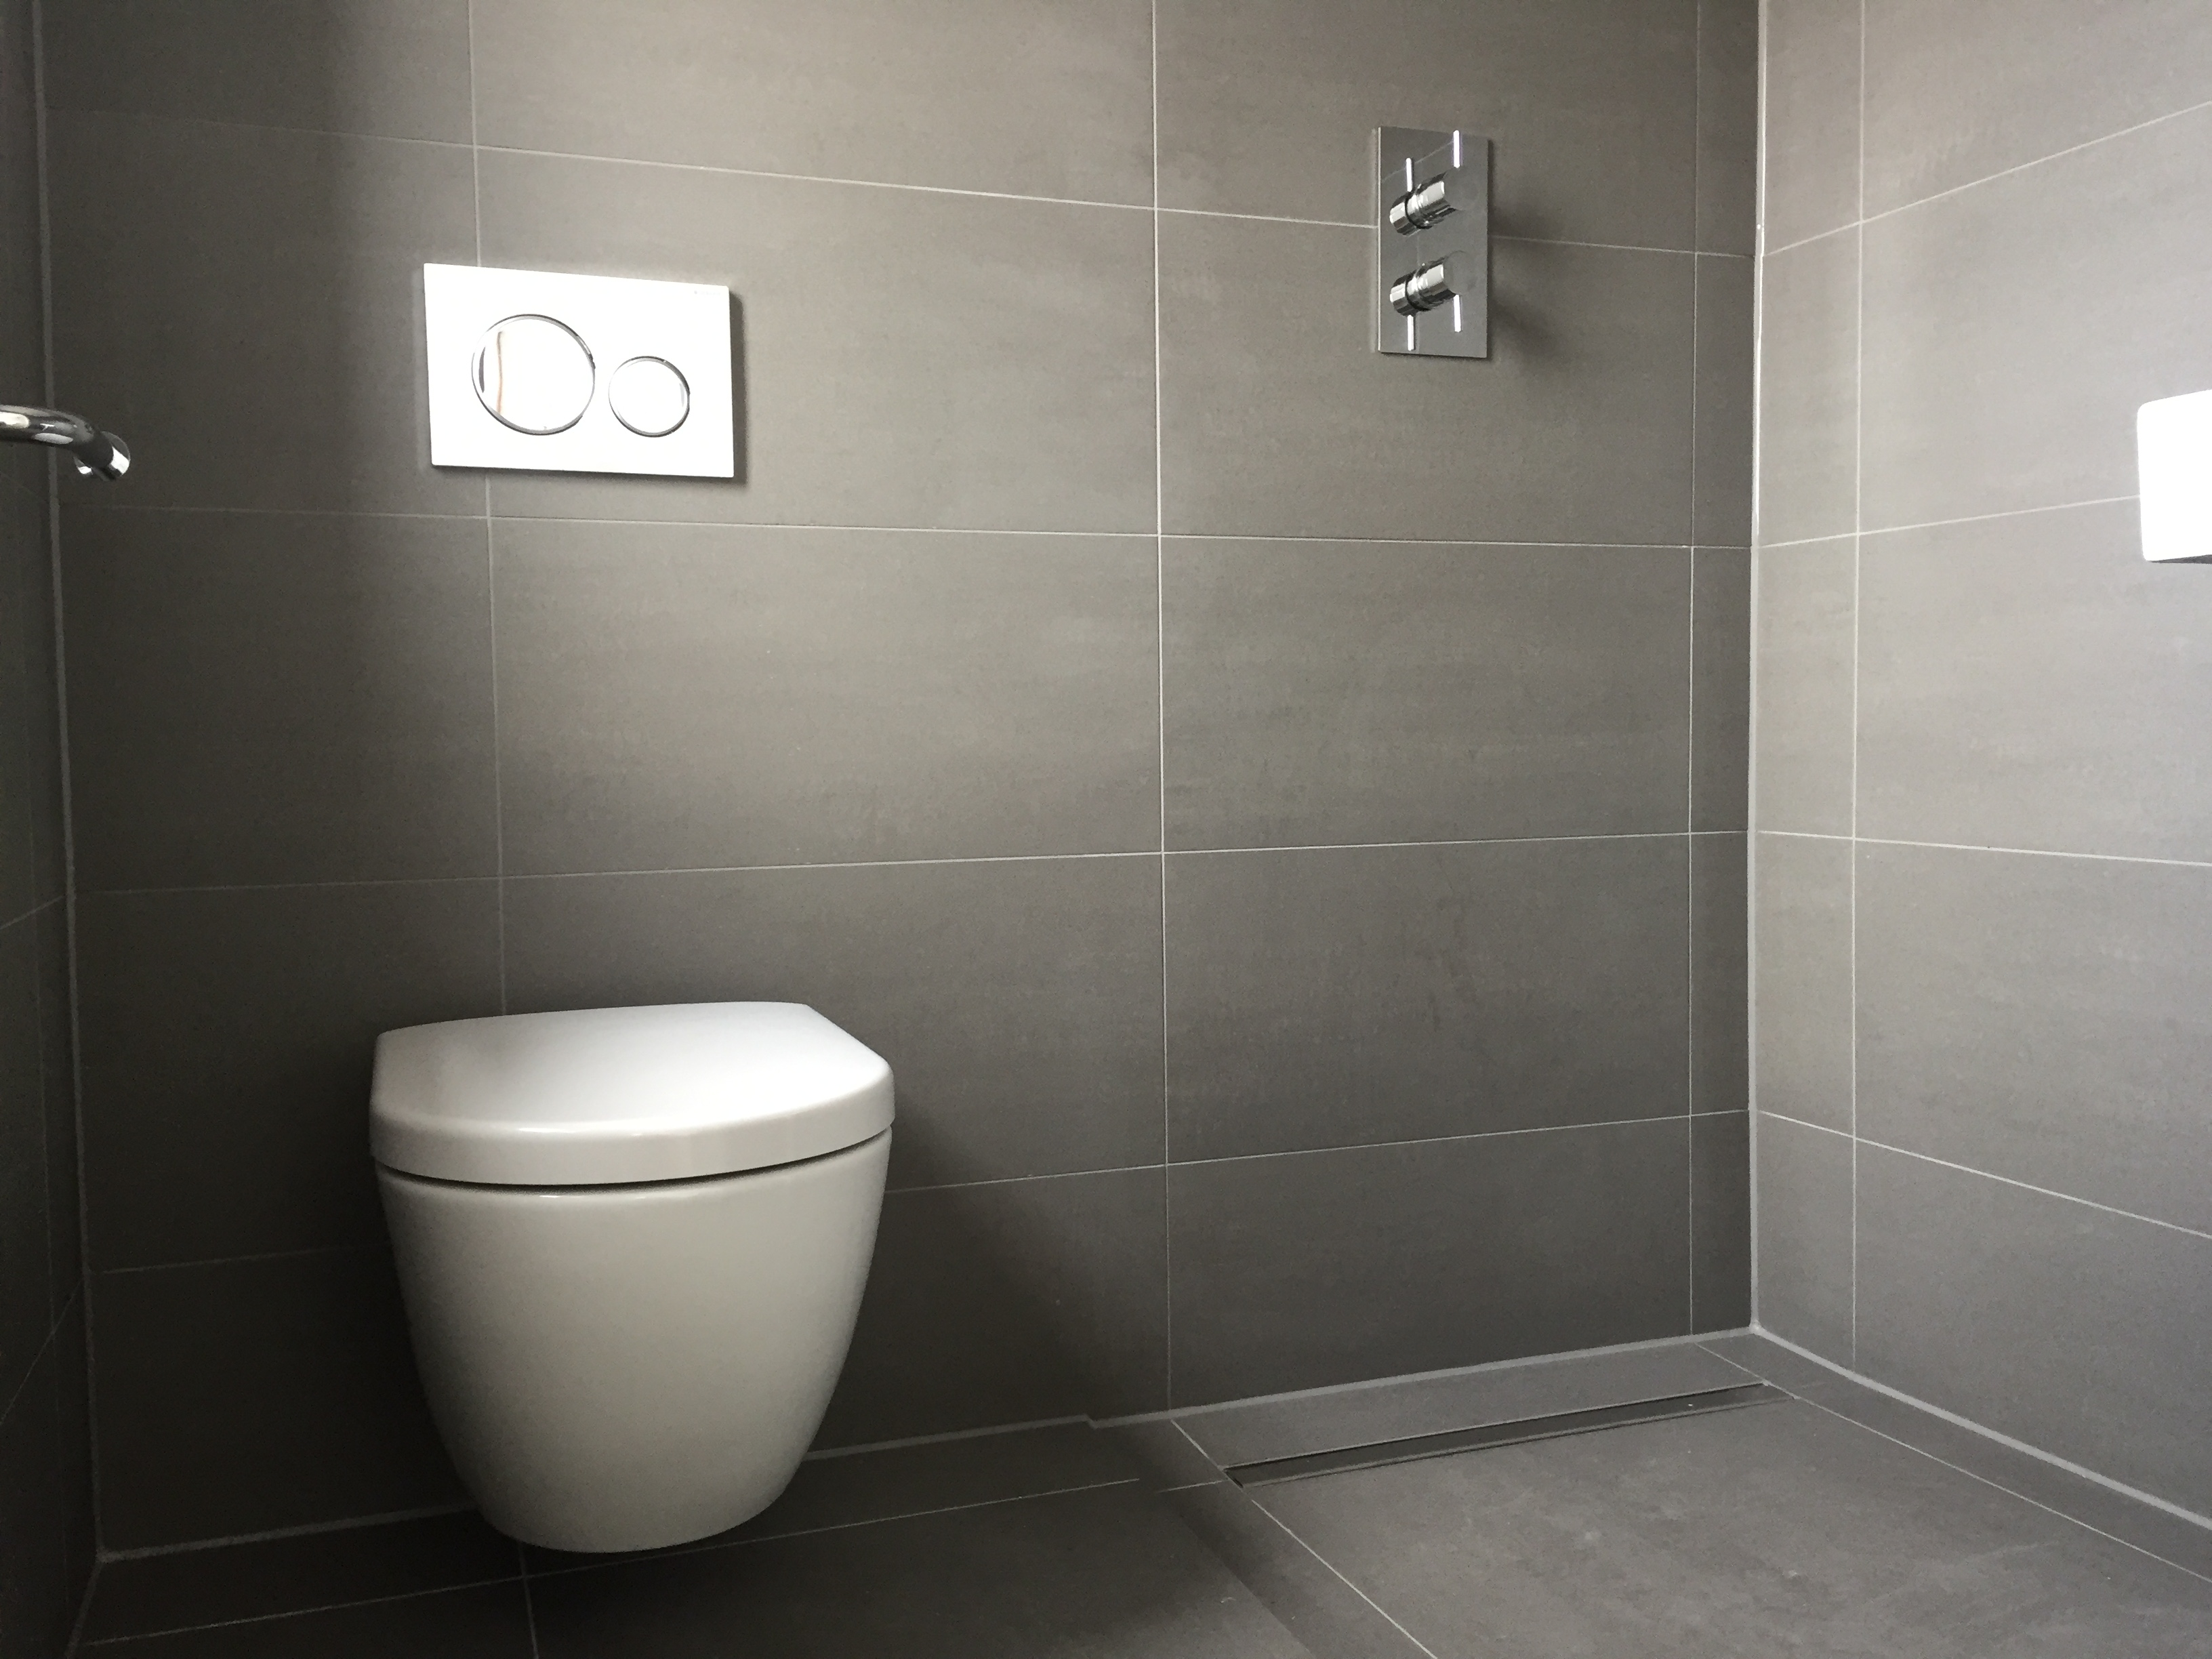 Bathroom Supply Design And Installation In Gravesend Kent - I need a new bathroom